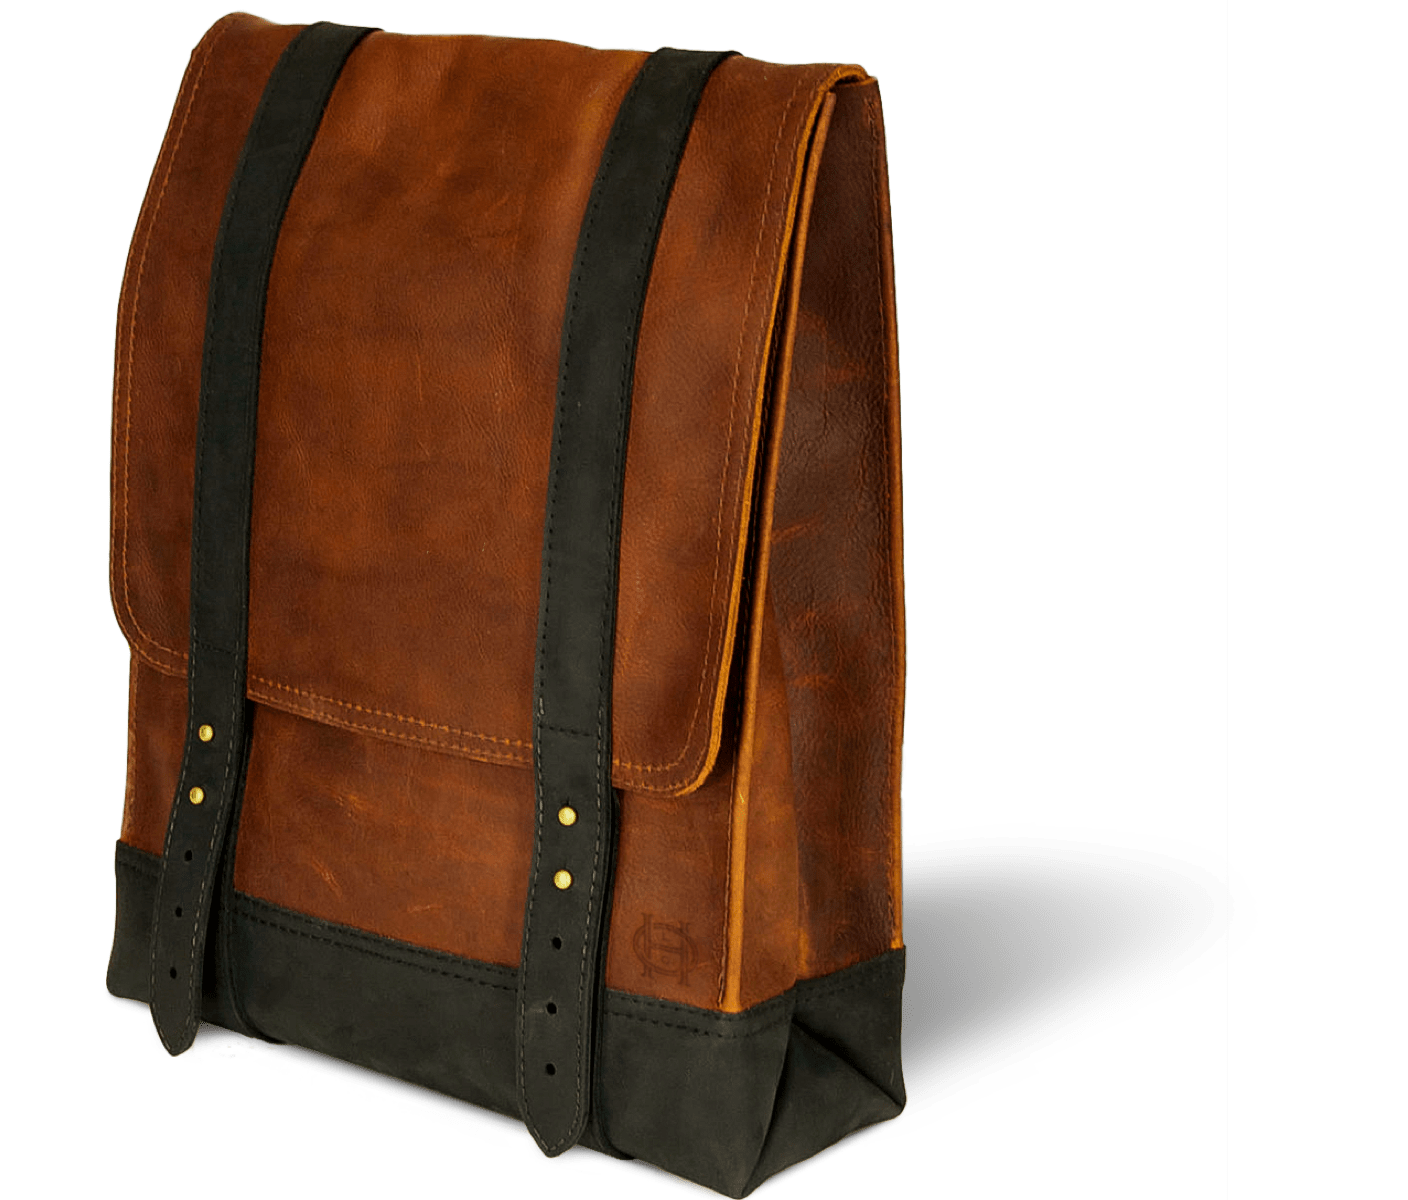 7354c492a3 Open Hand Leather Goods - Made by hand with precision and care.